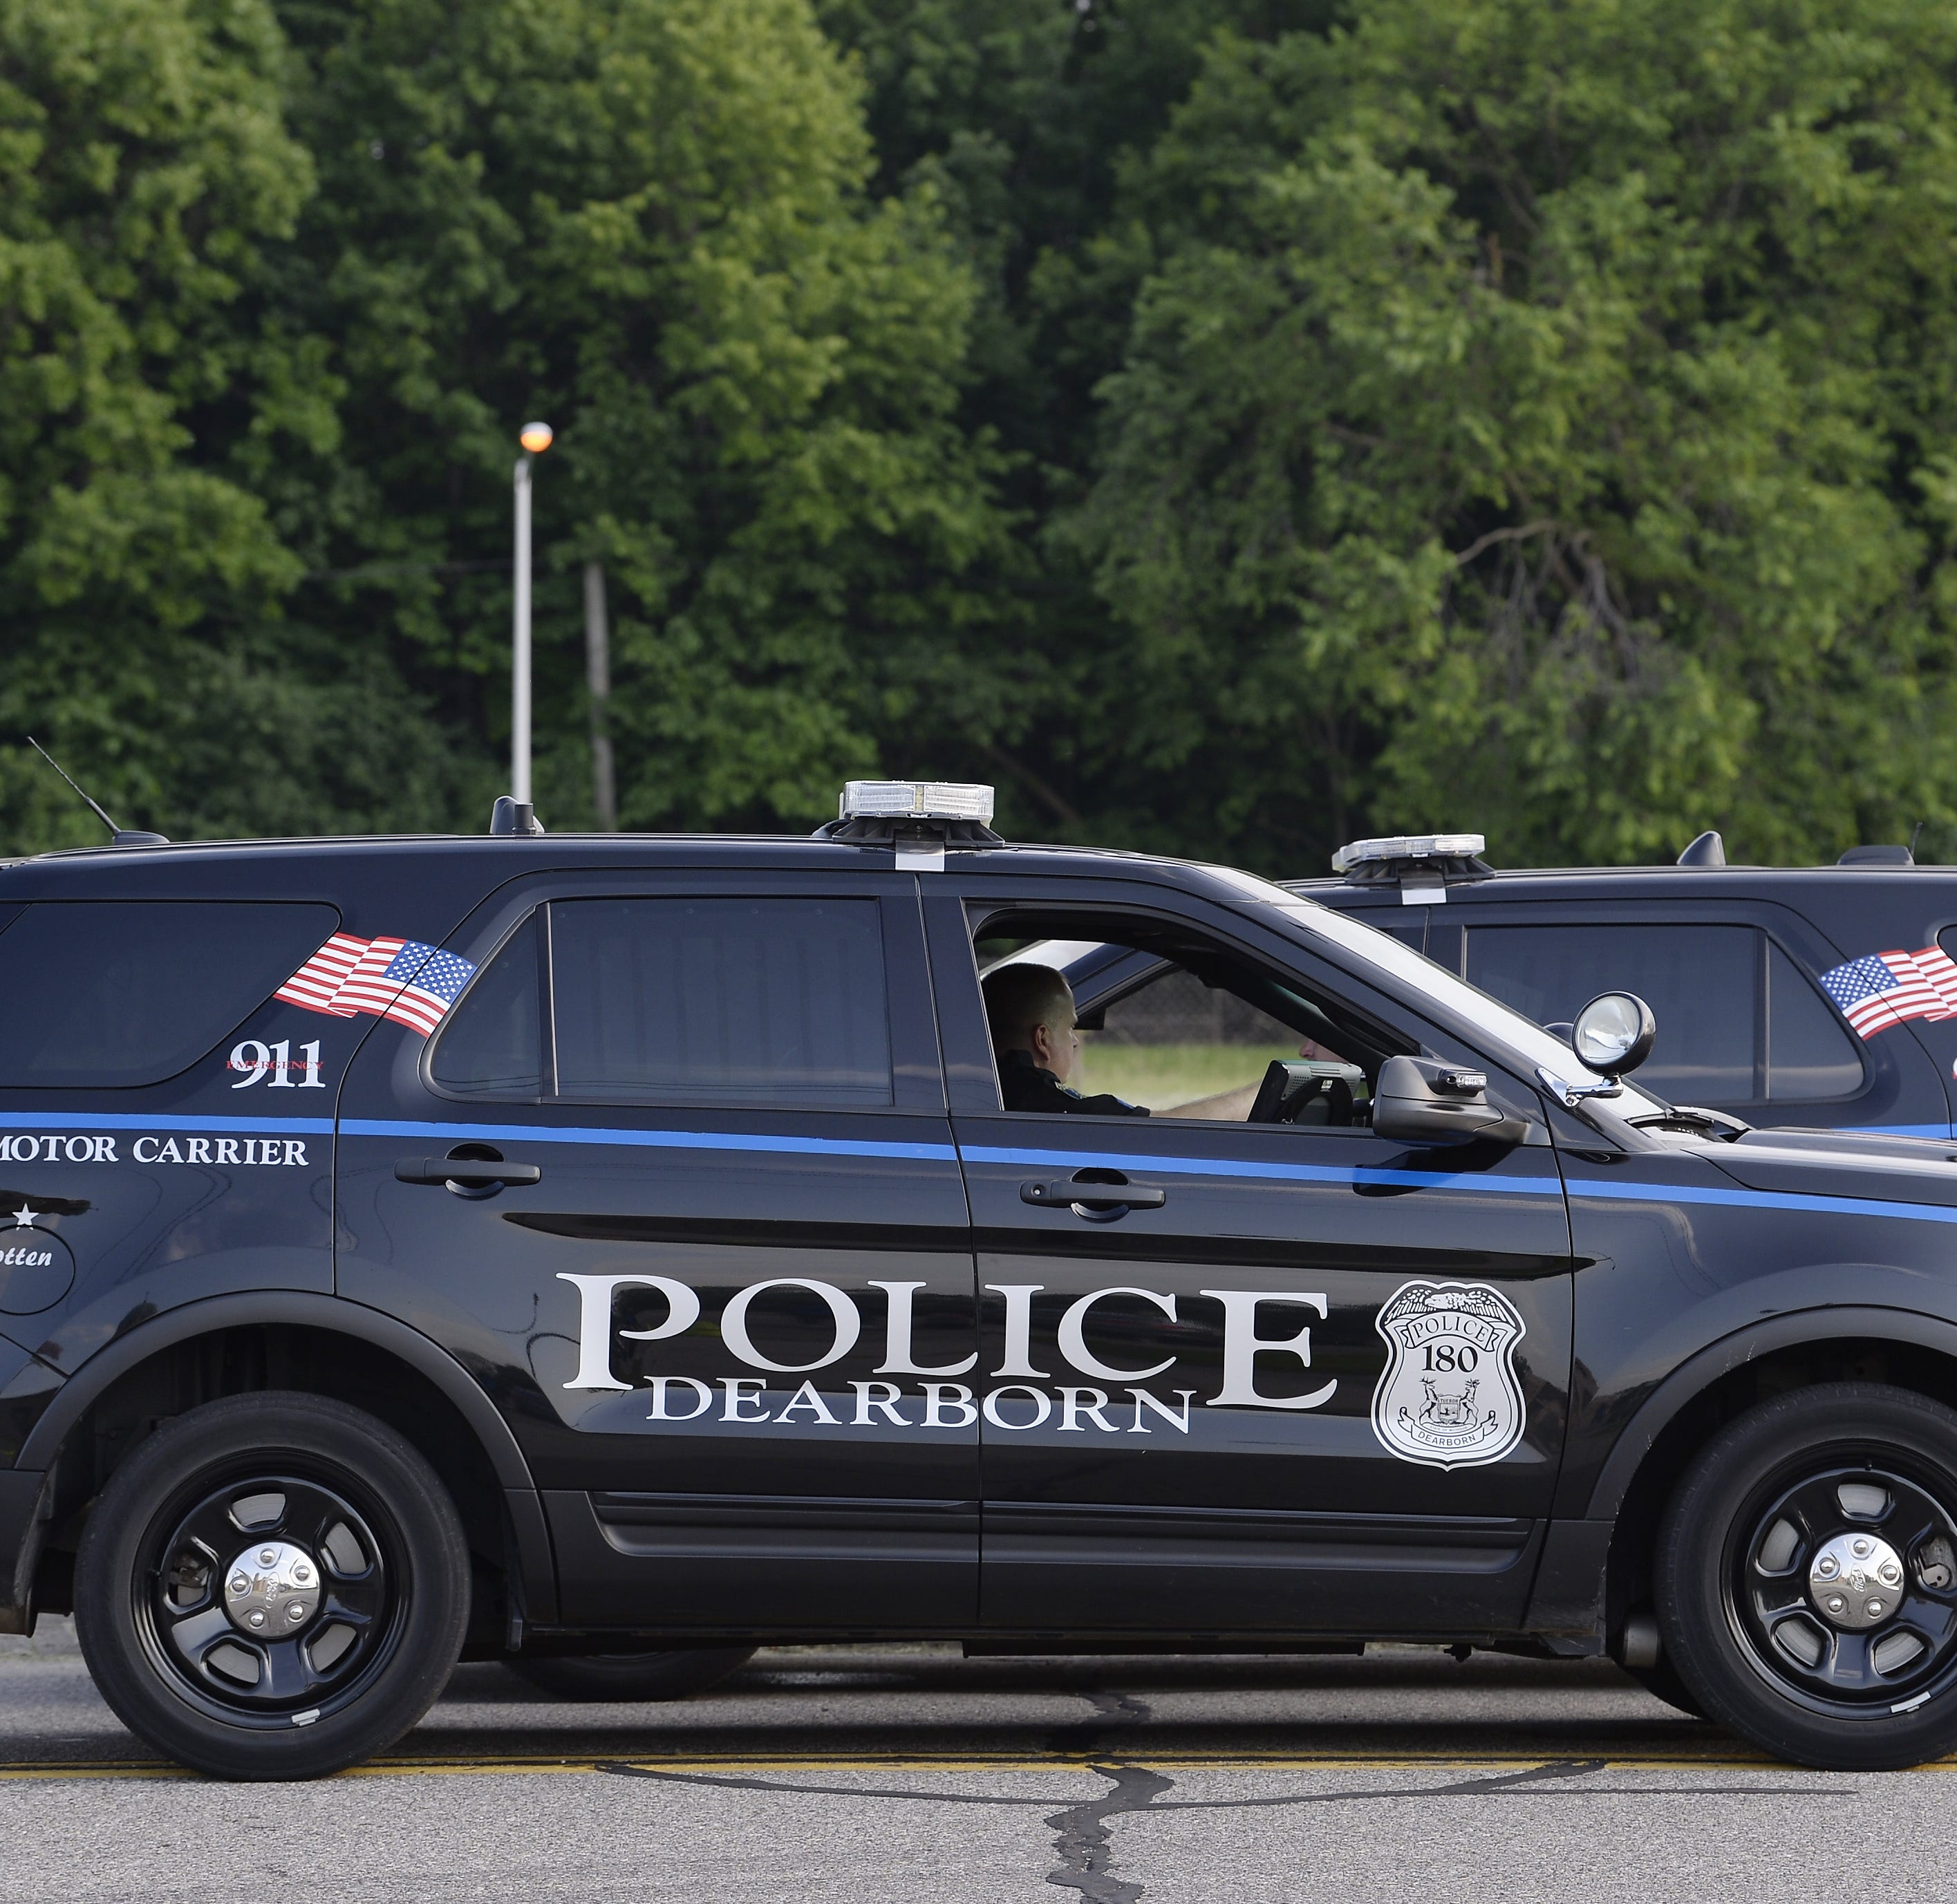 Skeletal remains found in Dearborn